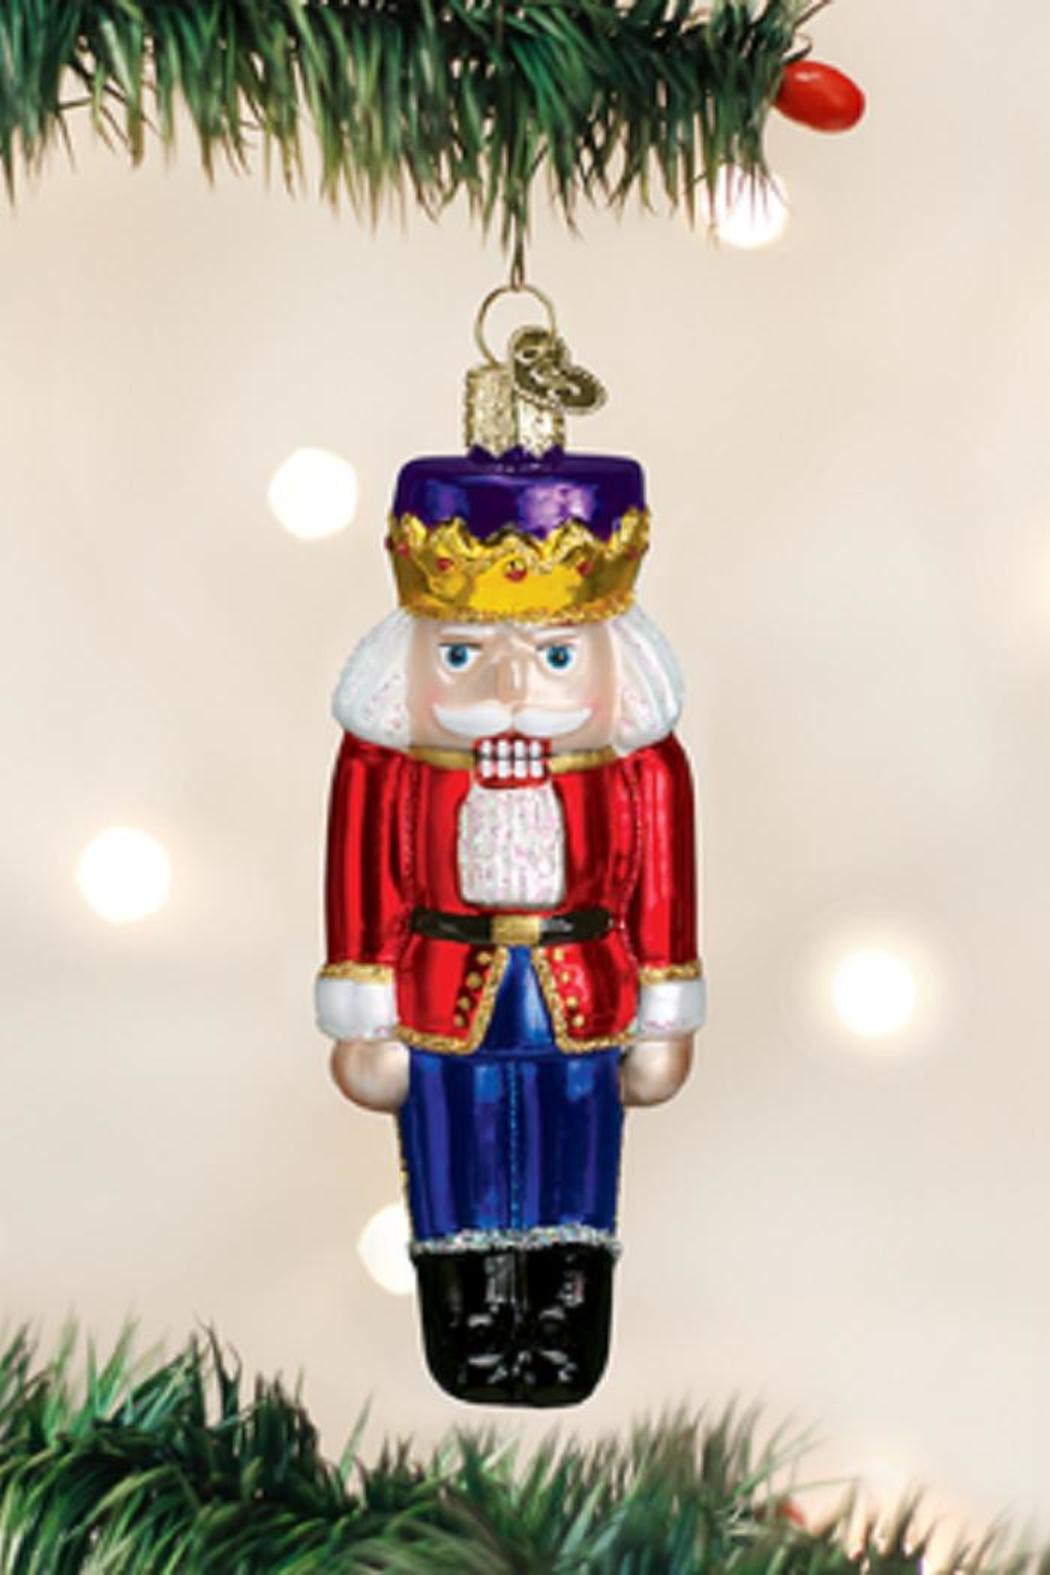 Old World Christmas Nutcracker Prince Ornament - Main Image